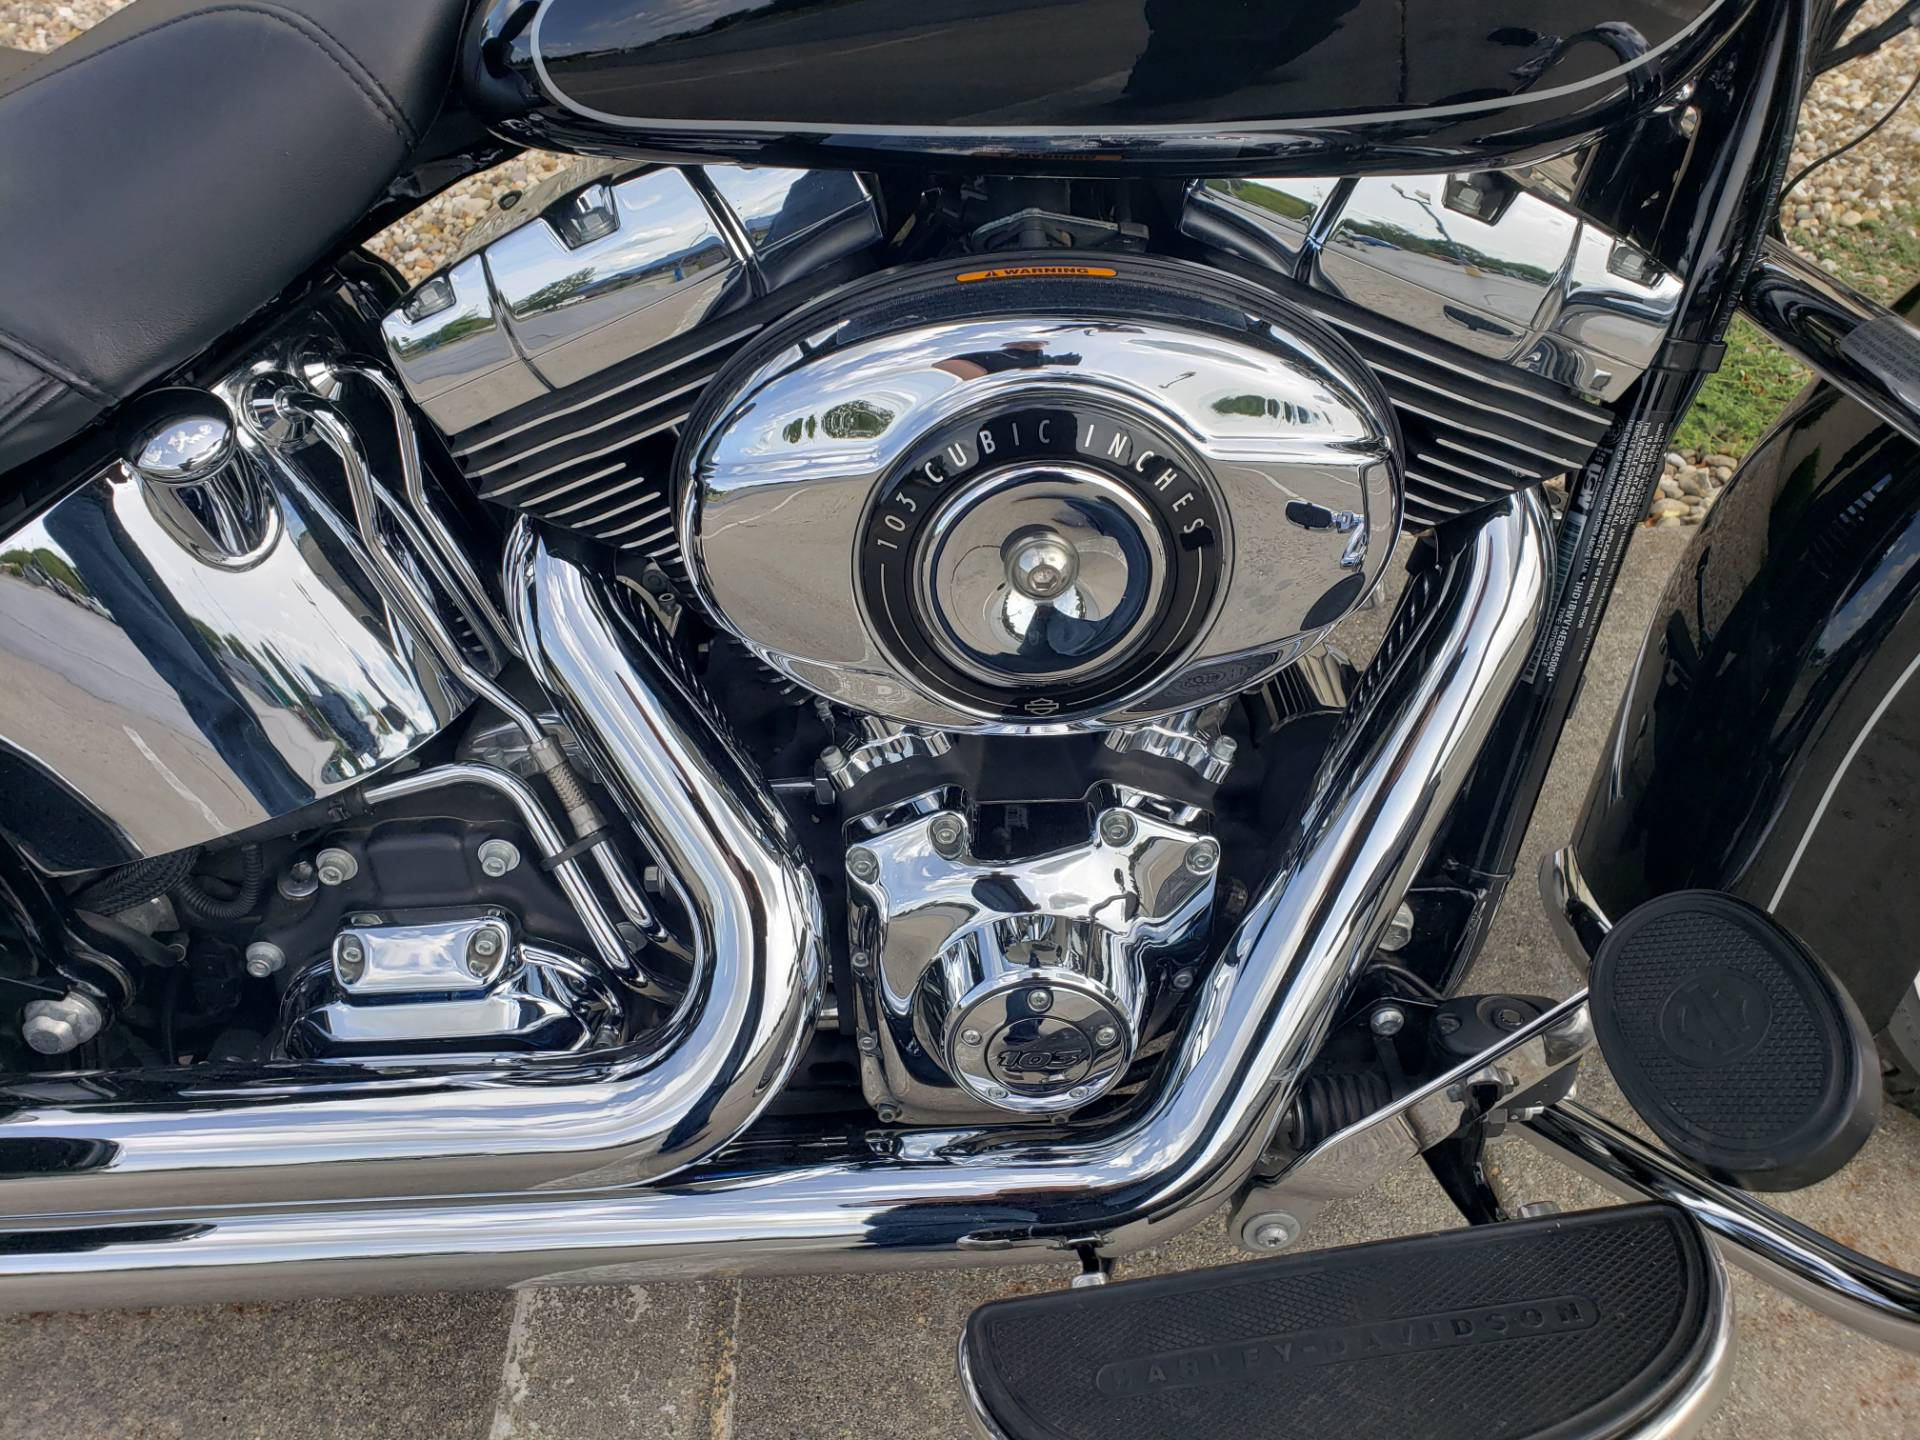 2014 Harley-Davidson Heritage Softail® Classic in Rock Falls, Illinois - Photo 5